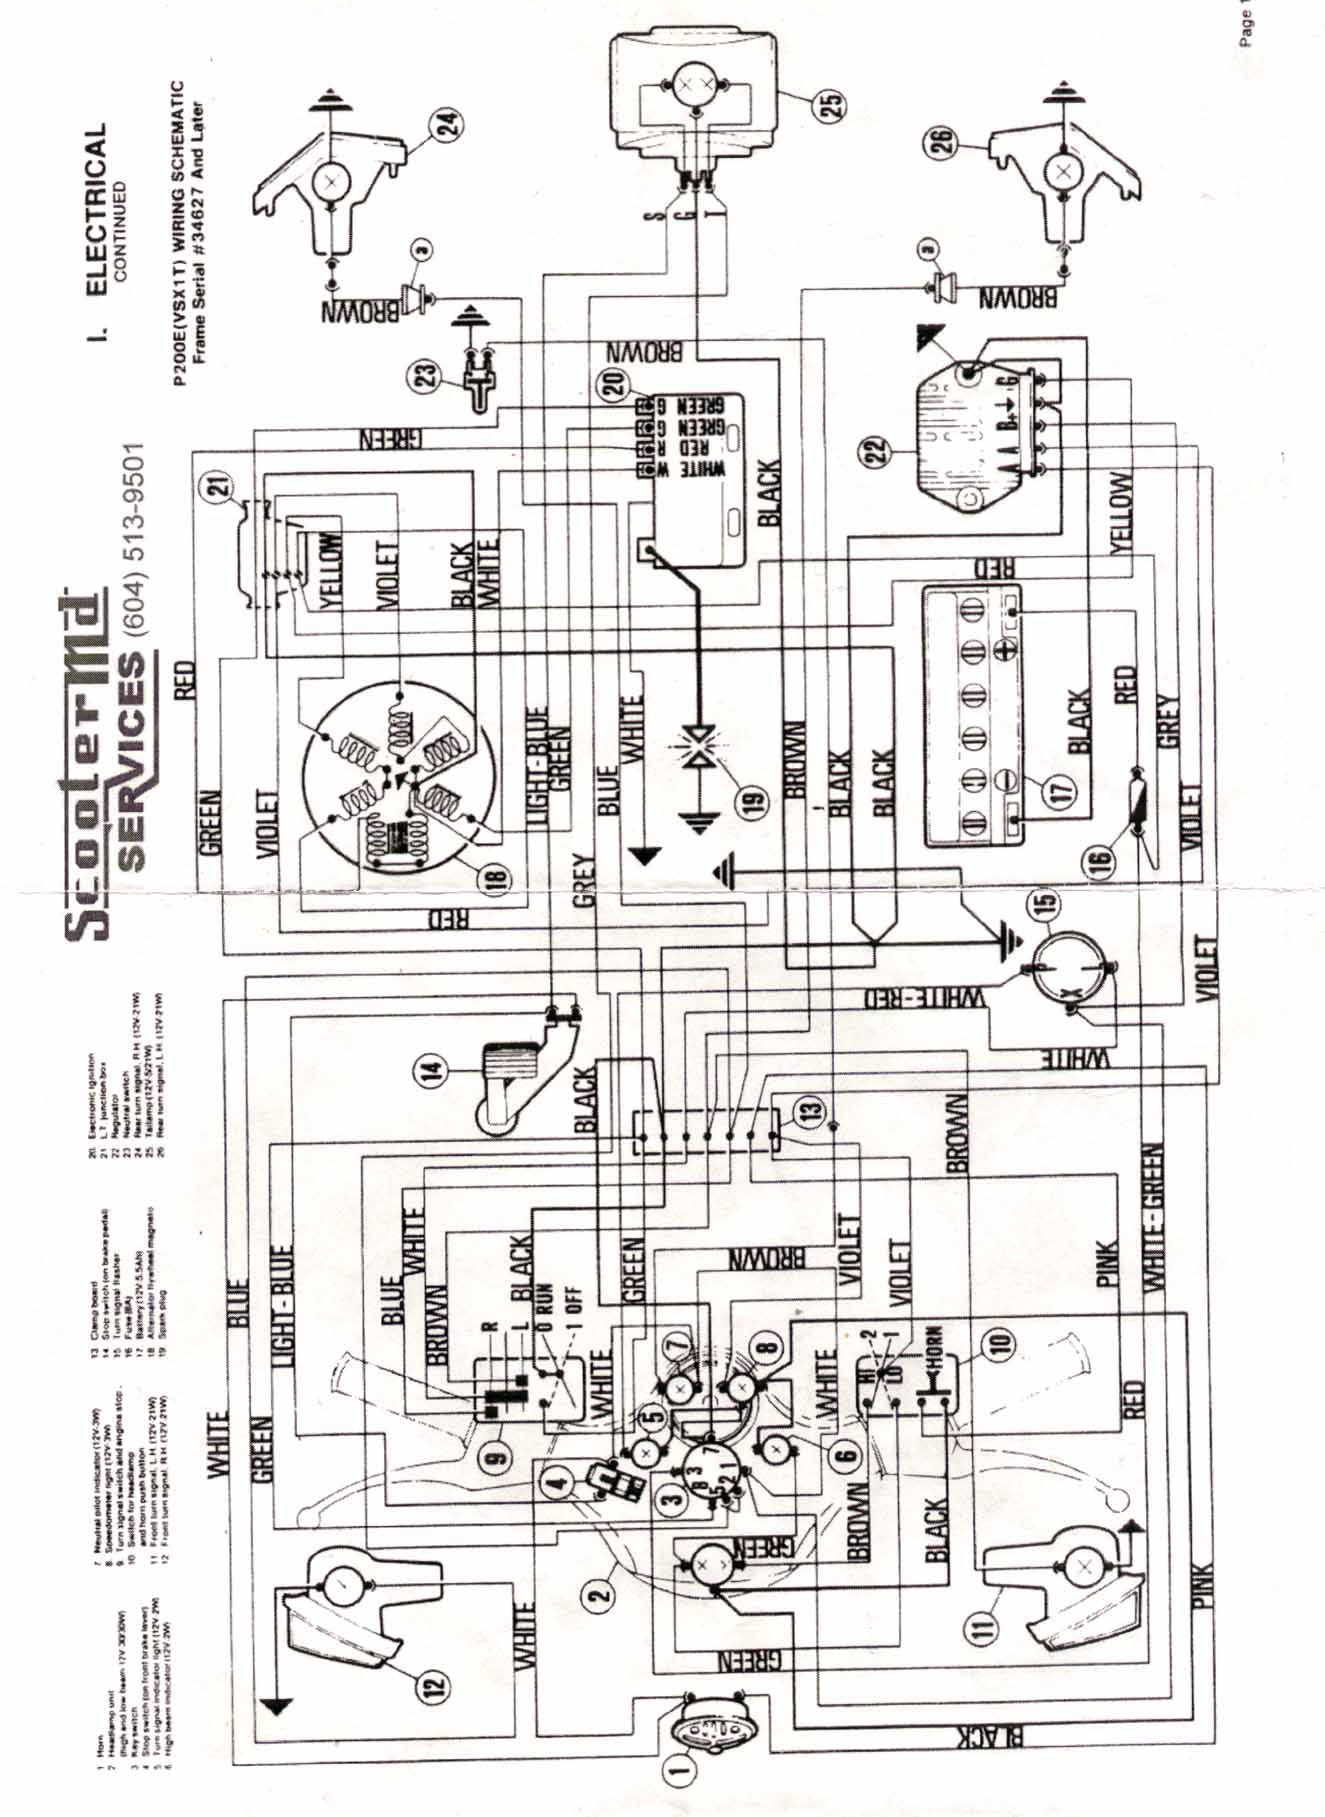 p200diag2 vespa p series maintenance & repair vespa px wiring loom diagram at alyssarenee.co